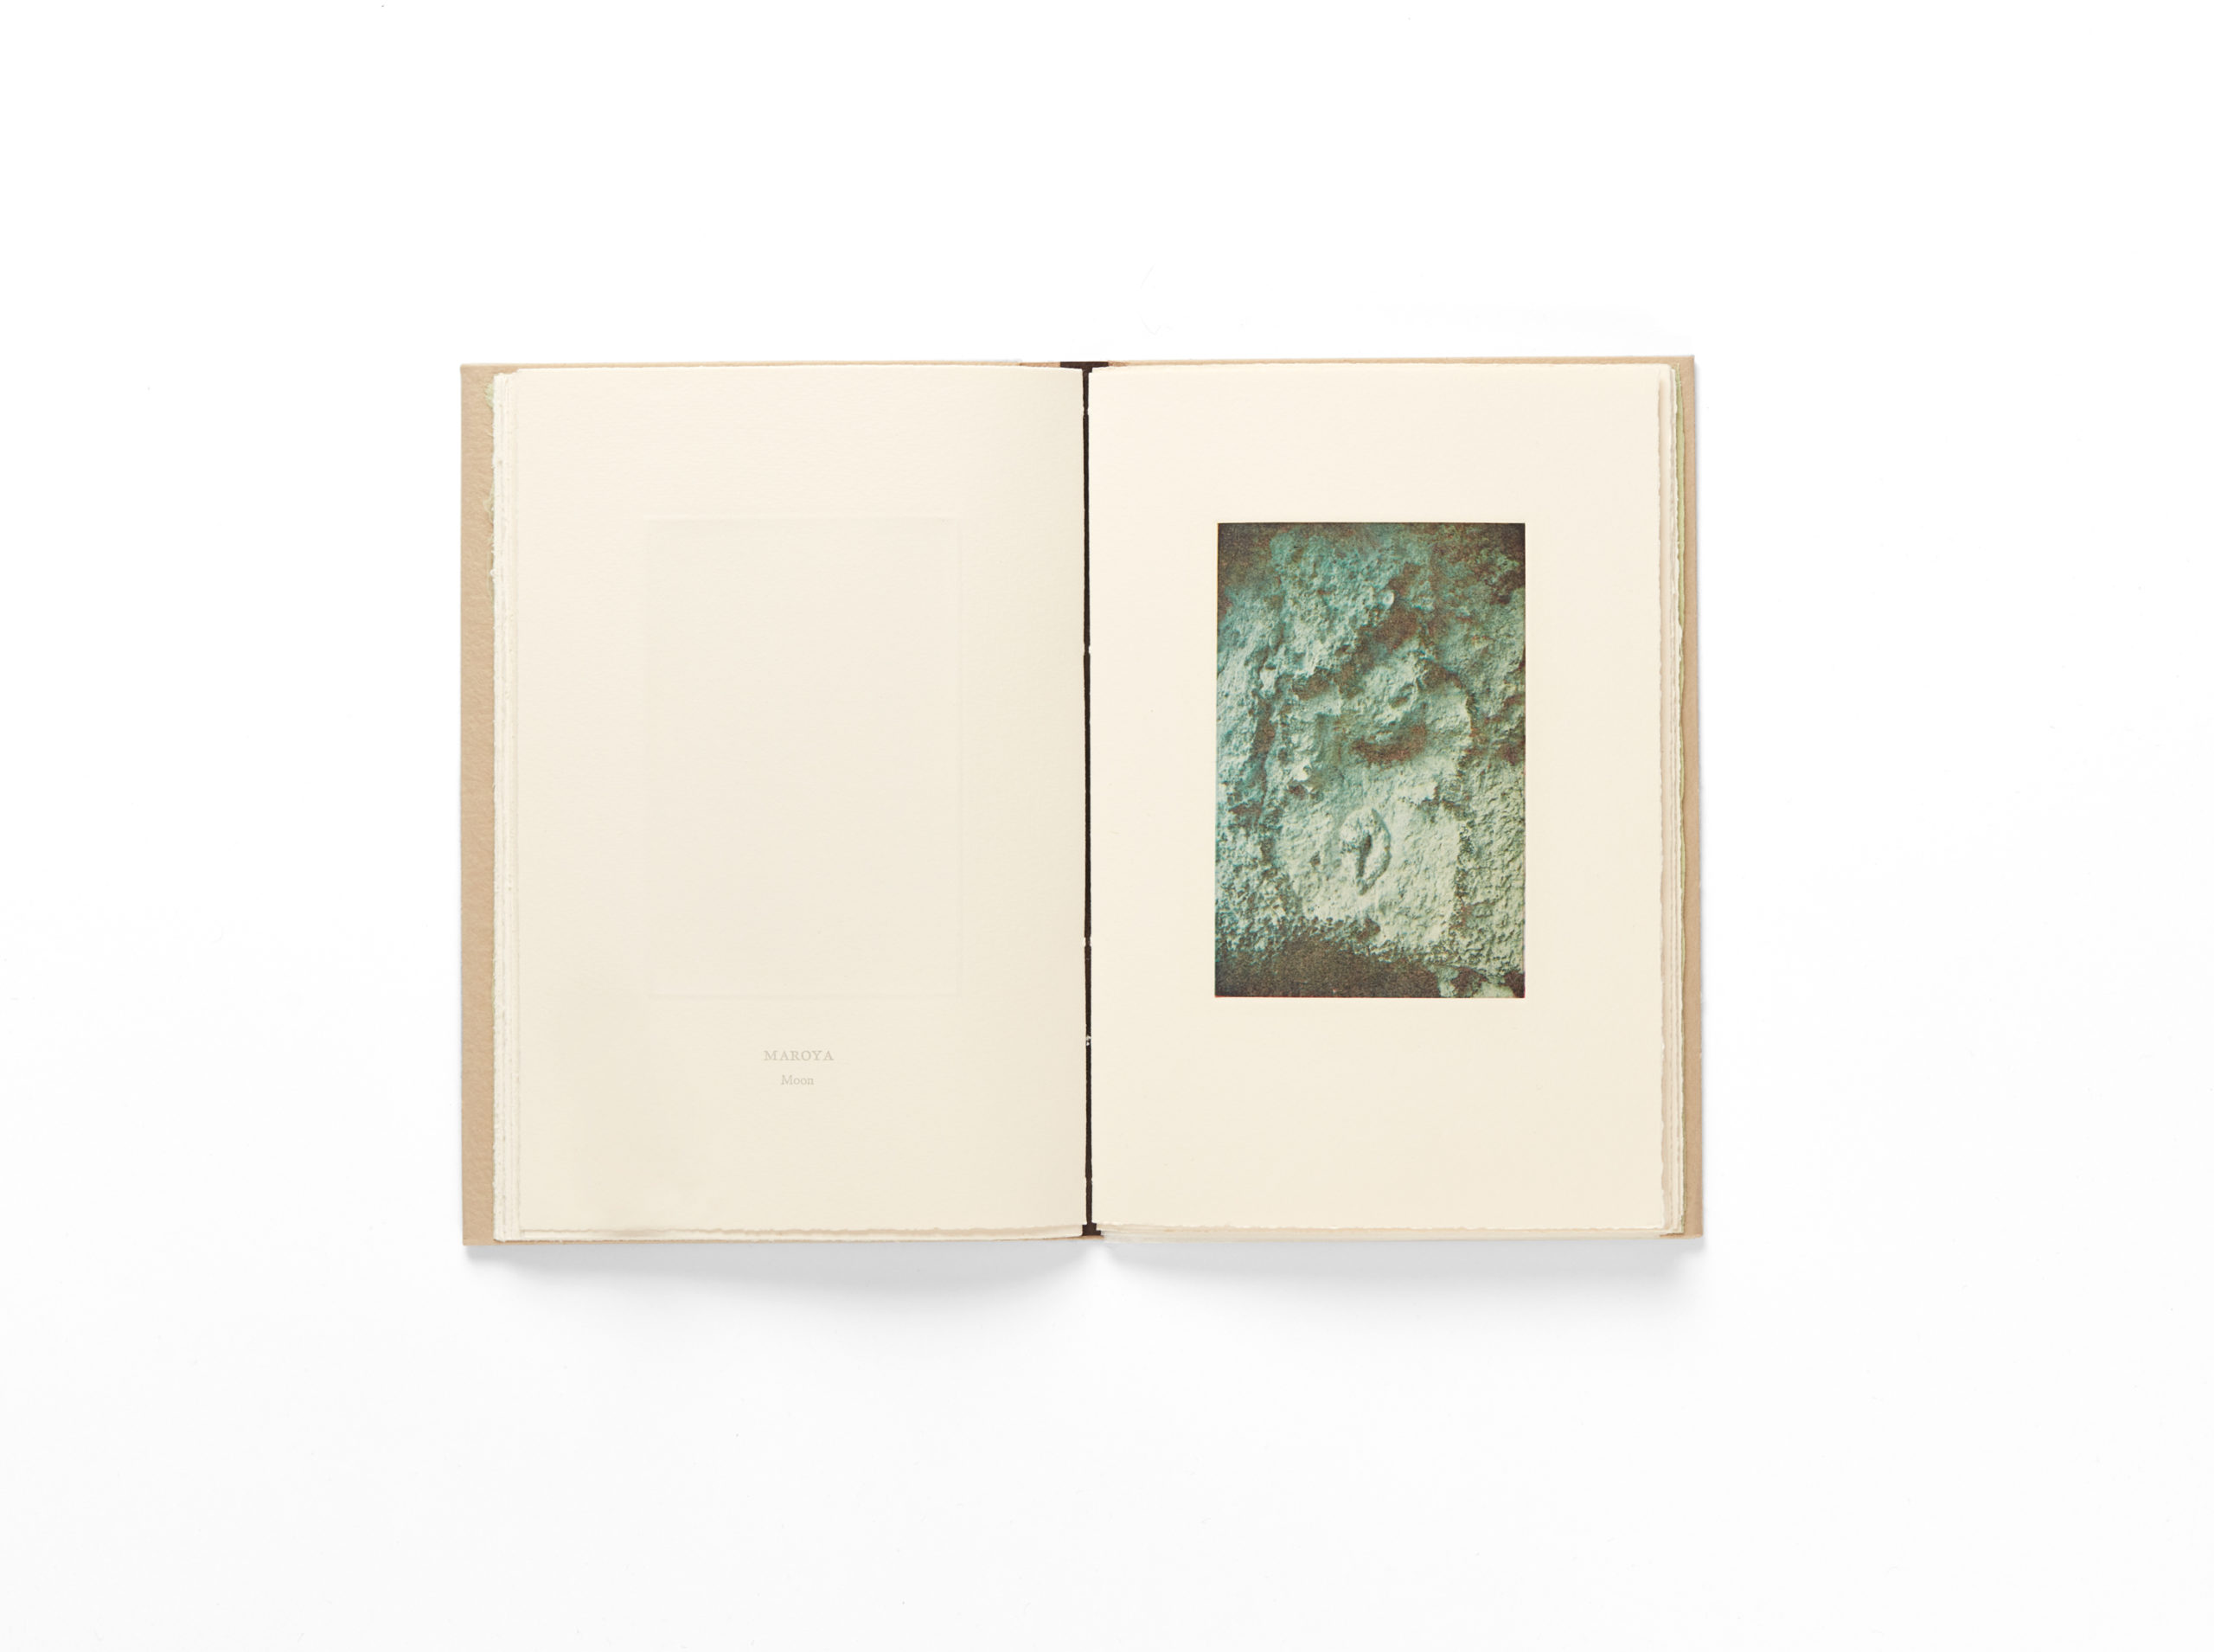 book open to an image of a body shaped recess carved into a rock